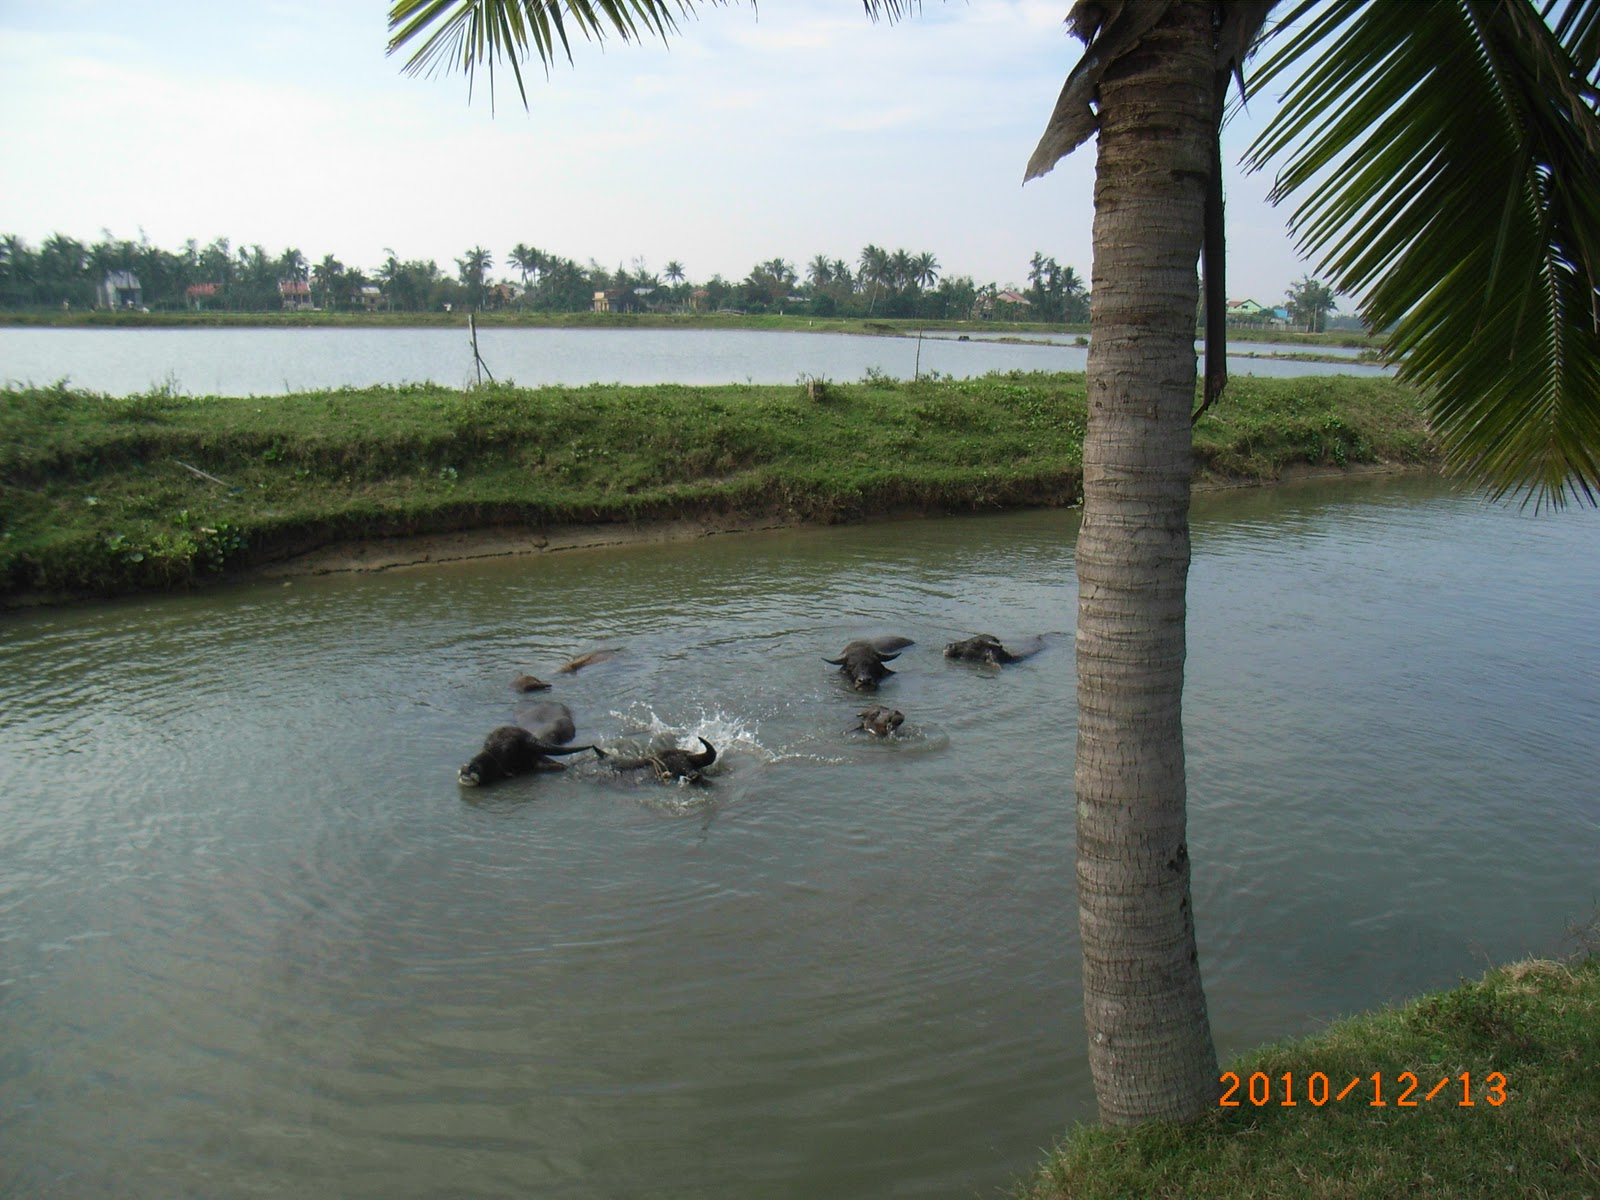 Water buffalo having a batle